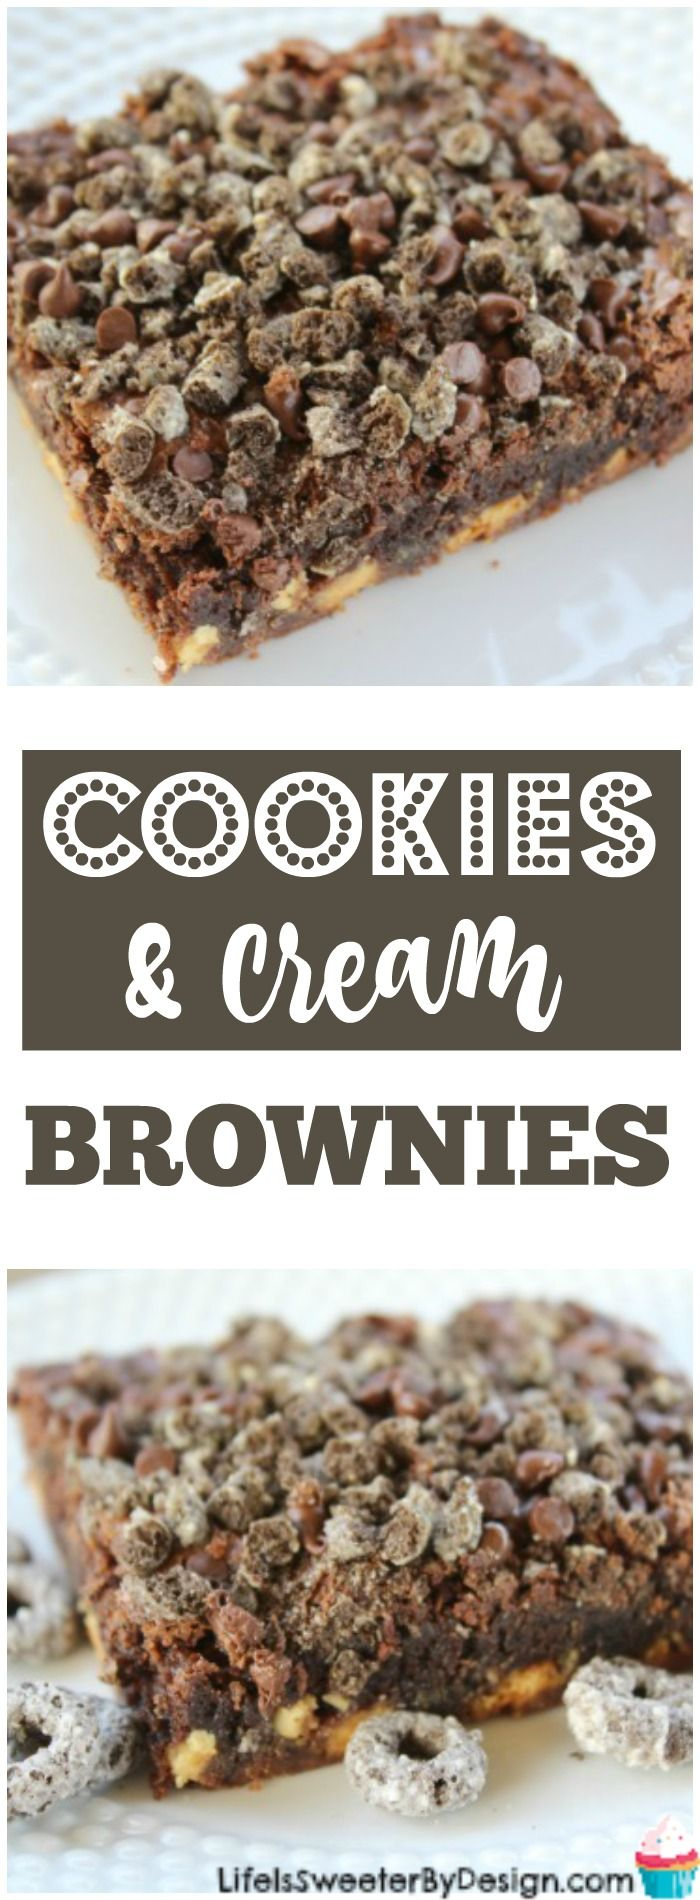 Cookies and Cream Brownies are easy to make with a boxed brownie mix. Full of white chocolate chips, mini chocolate chips and cookies and cream cereal these brownies are delicious! #CerealShakeup #CerealAnytime #ad